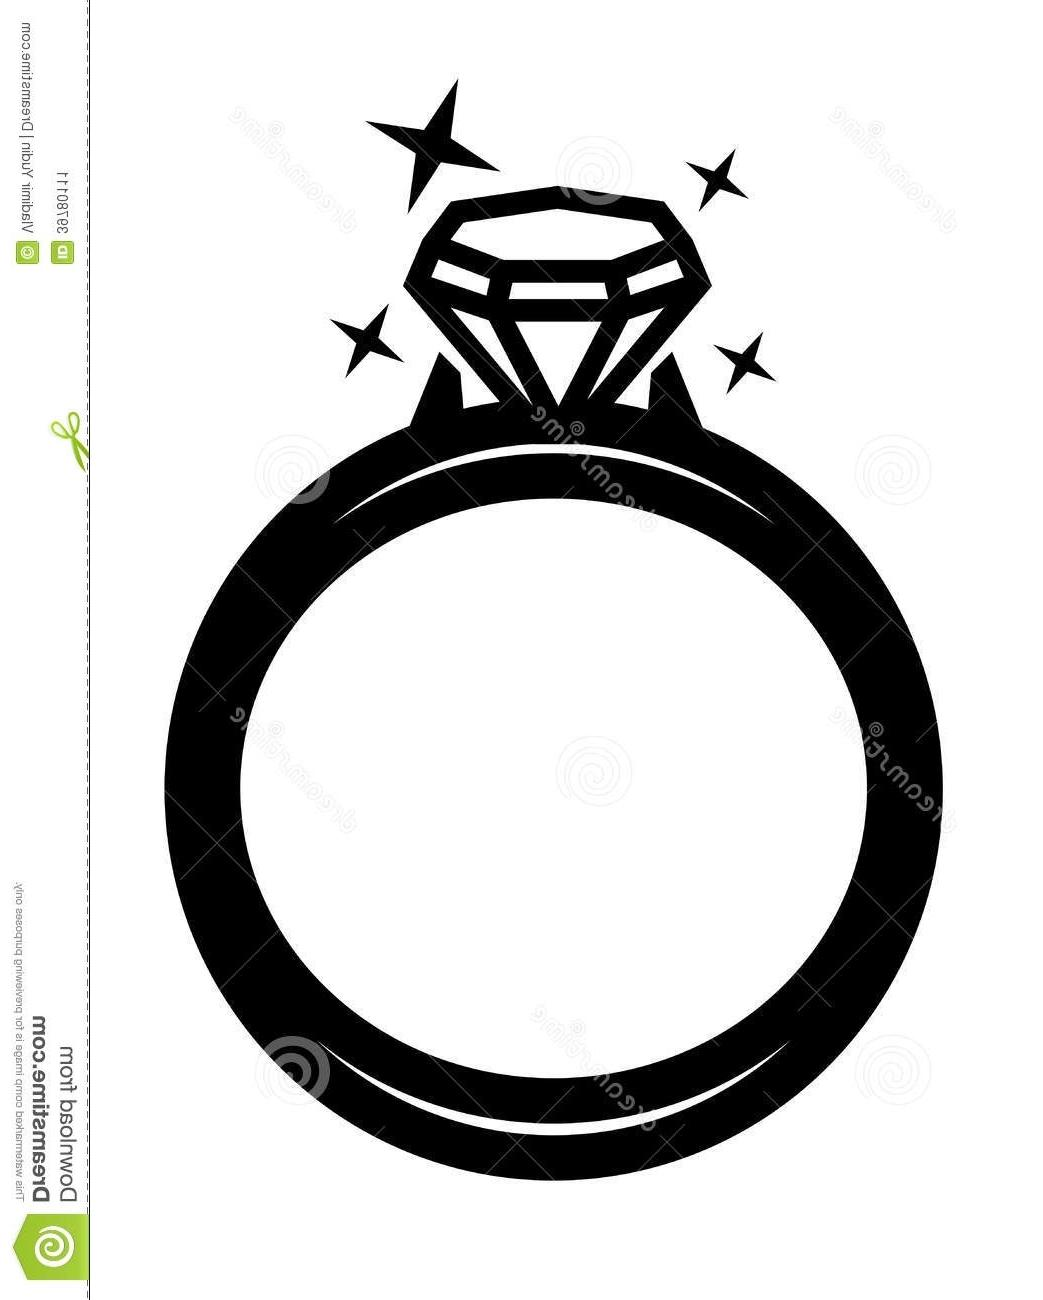 wedding ring graphic clipart free download best wedding. Black Bedroom Furniture Sets. Home Design Ideas